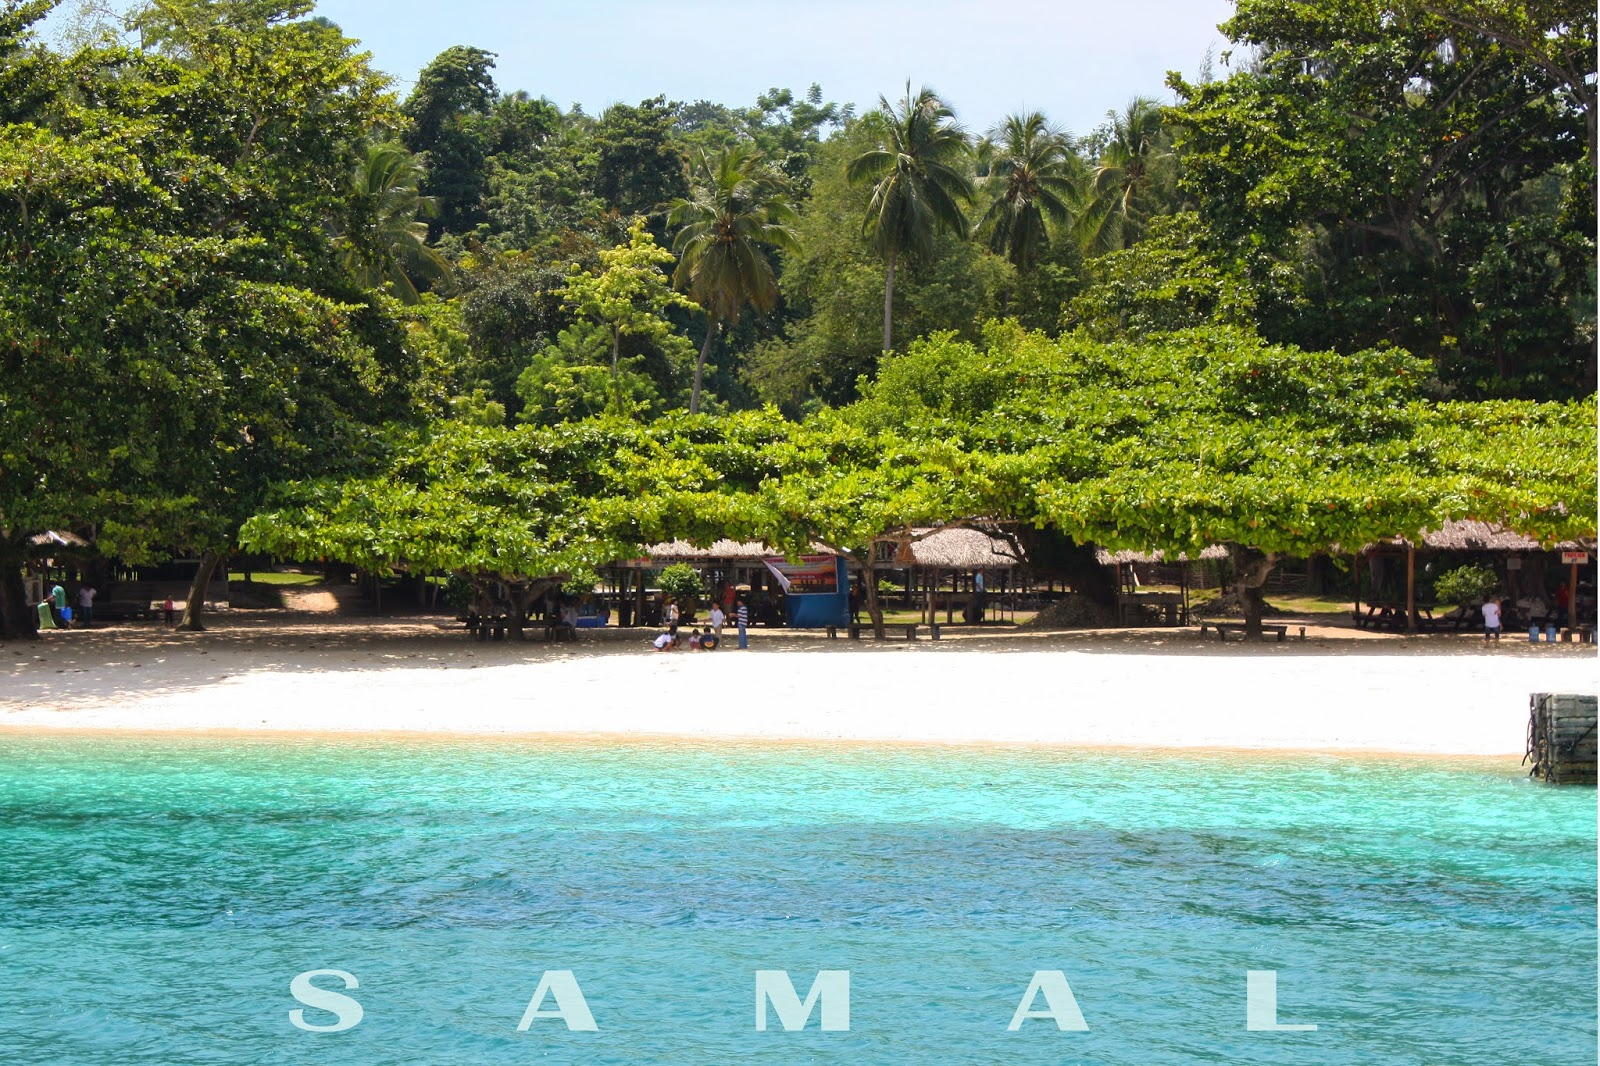 Canibad Beach Island Garden City Of Samal Davao Del Norte